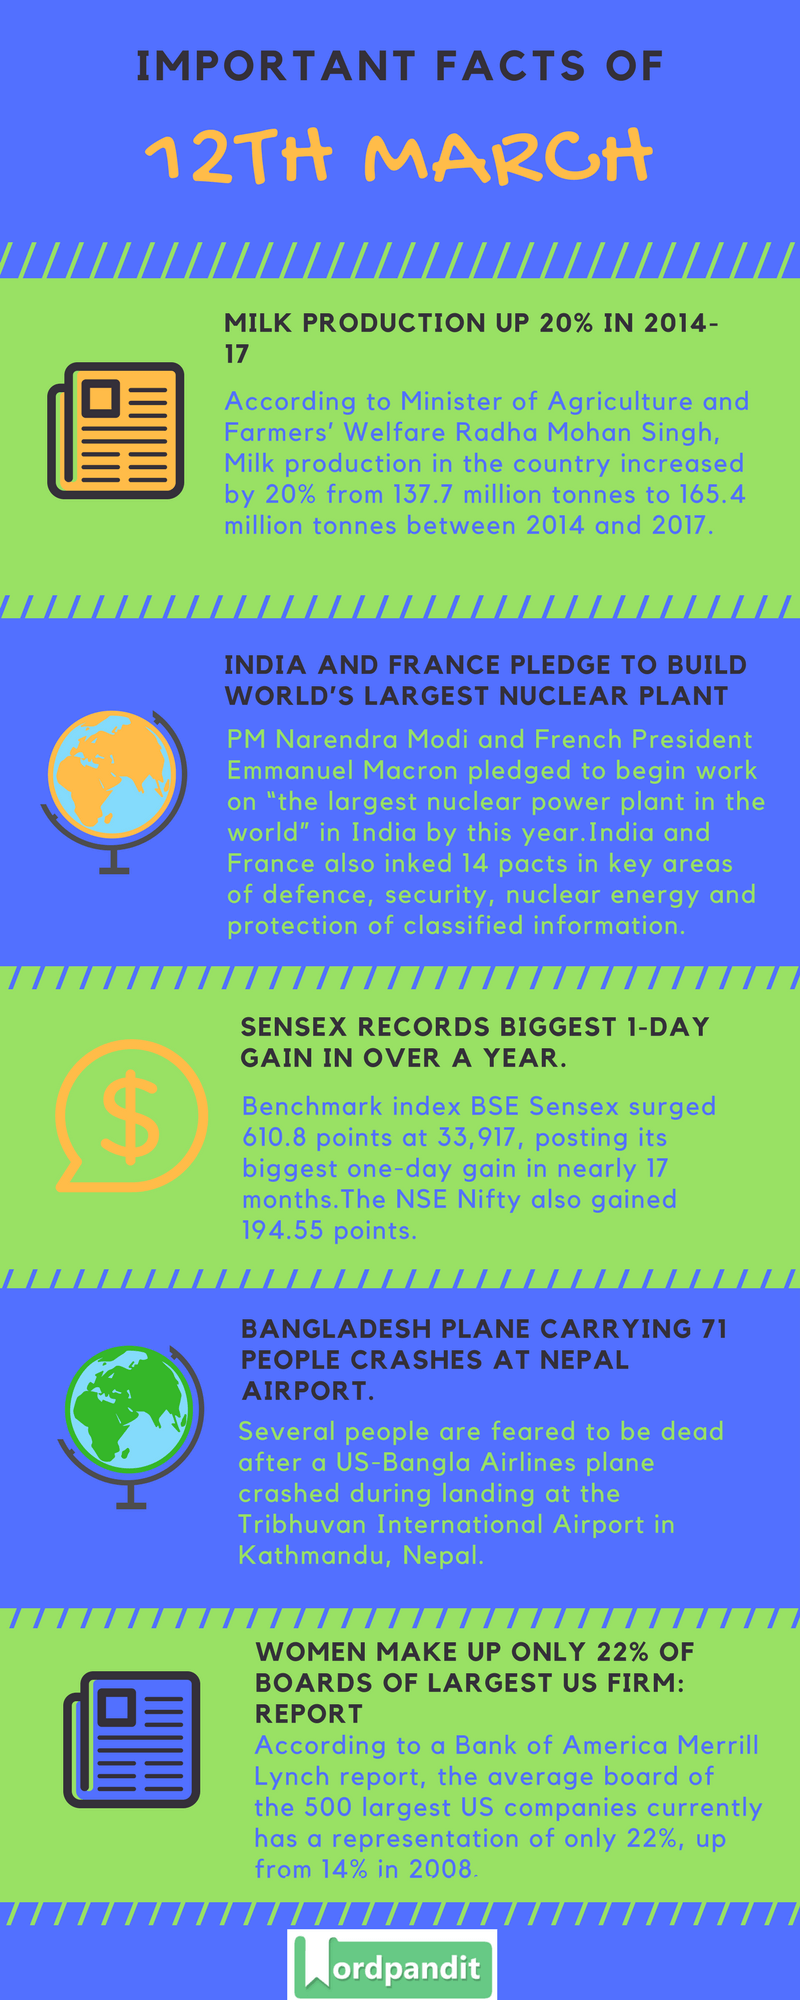 Daily Current Affairs 12 March 2018 Current Affairs Quiz March 12 2018 Current Affairs Infographic